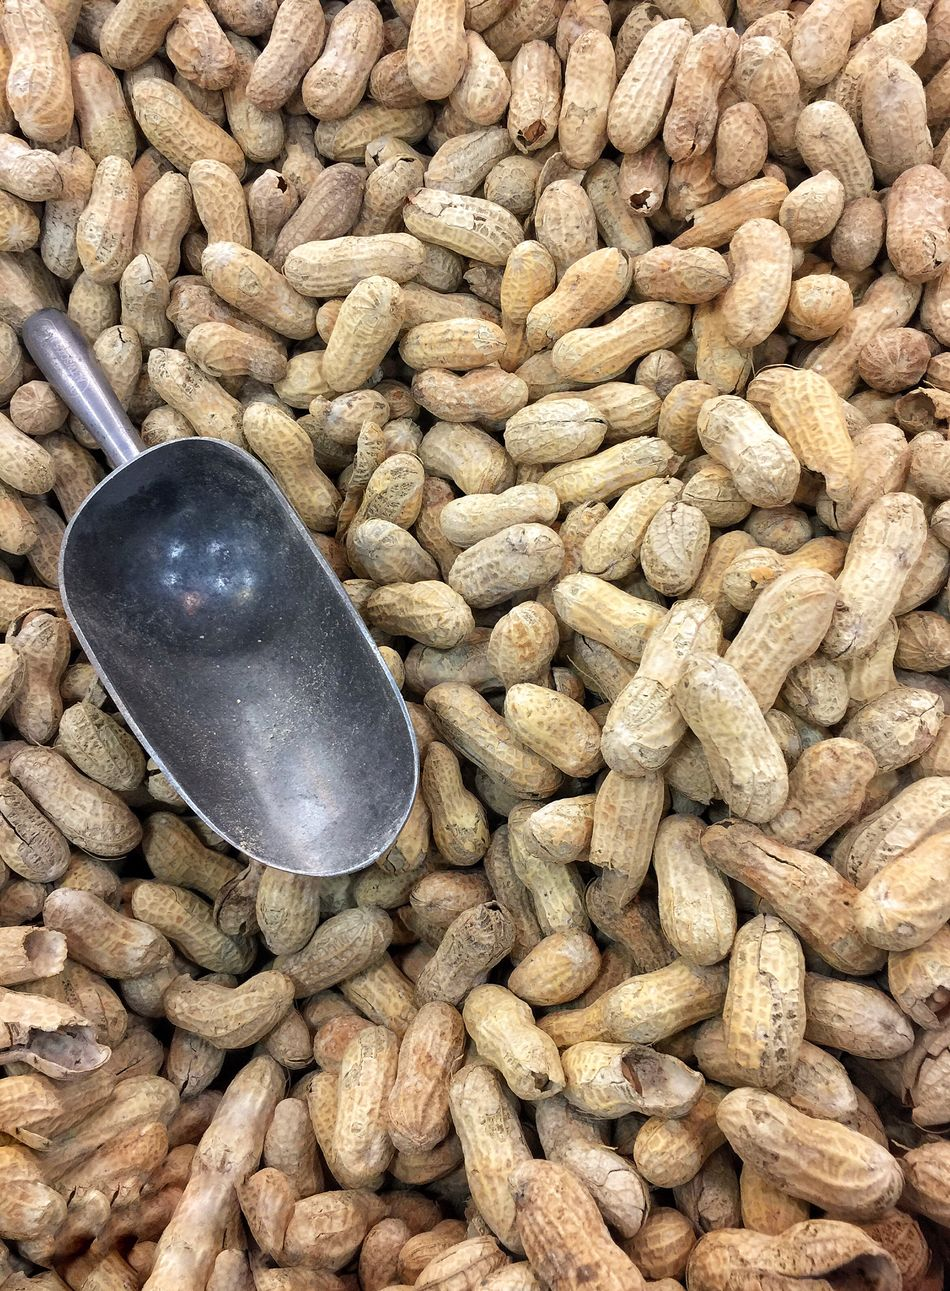 Peanuts Peanut Healthy Eating Food Food And Drink Large Group Of Objects No People Serving Scoop Close-up Multiple Nuts Metal